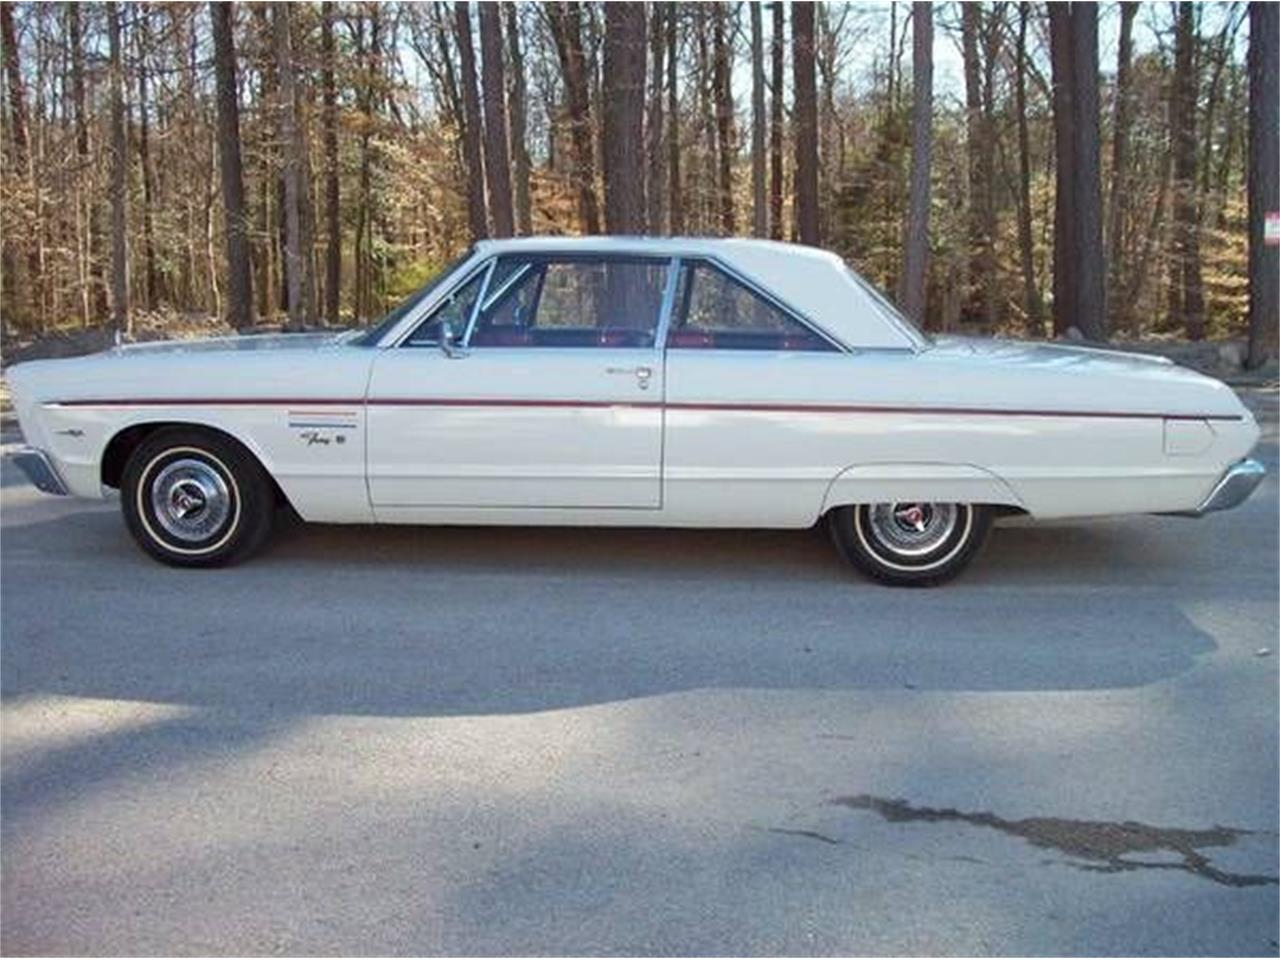 Large Picture of 1965 Plymouth Fury III located in Michigan - $22,495.00 Offered by Classic Car Deals - OHGN